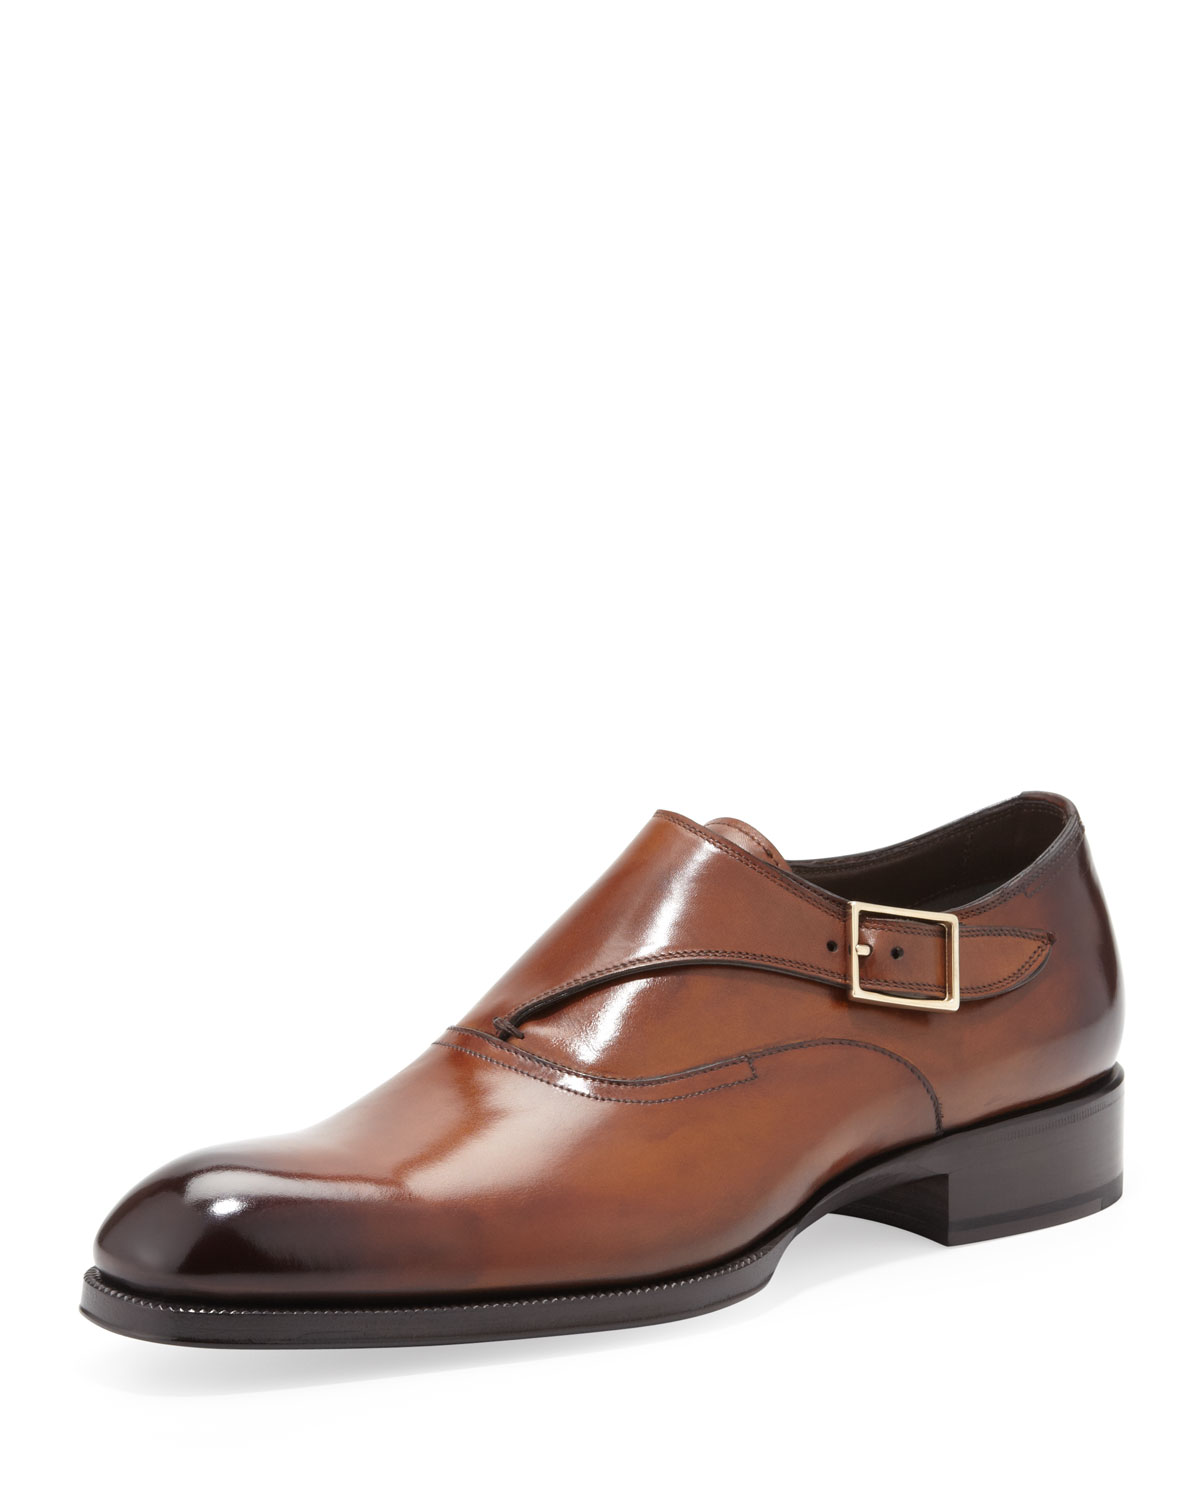 Tom Ford Accessories For Men Images Lanvin Shoes